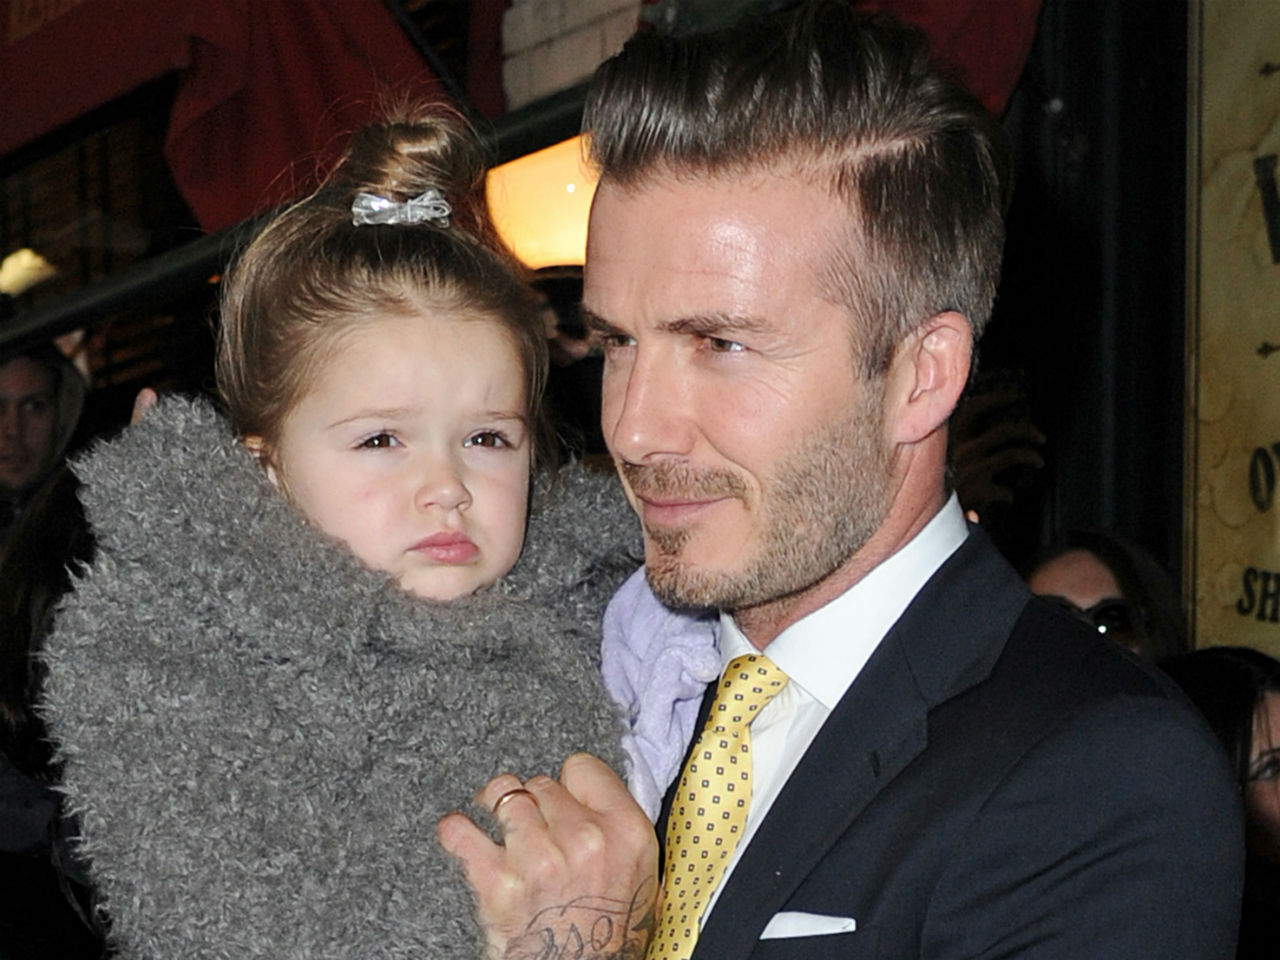 Harper Seven, daughter of David and Victoria Beckham